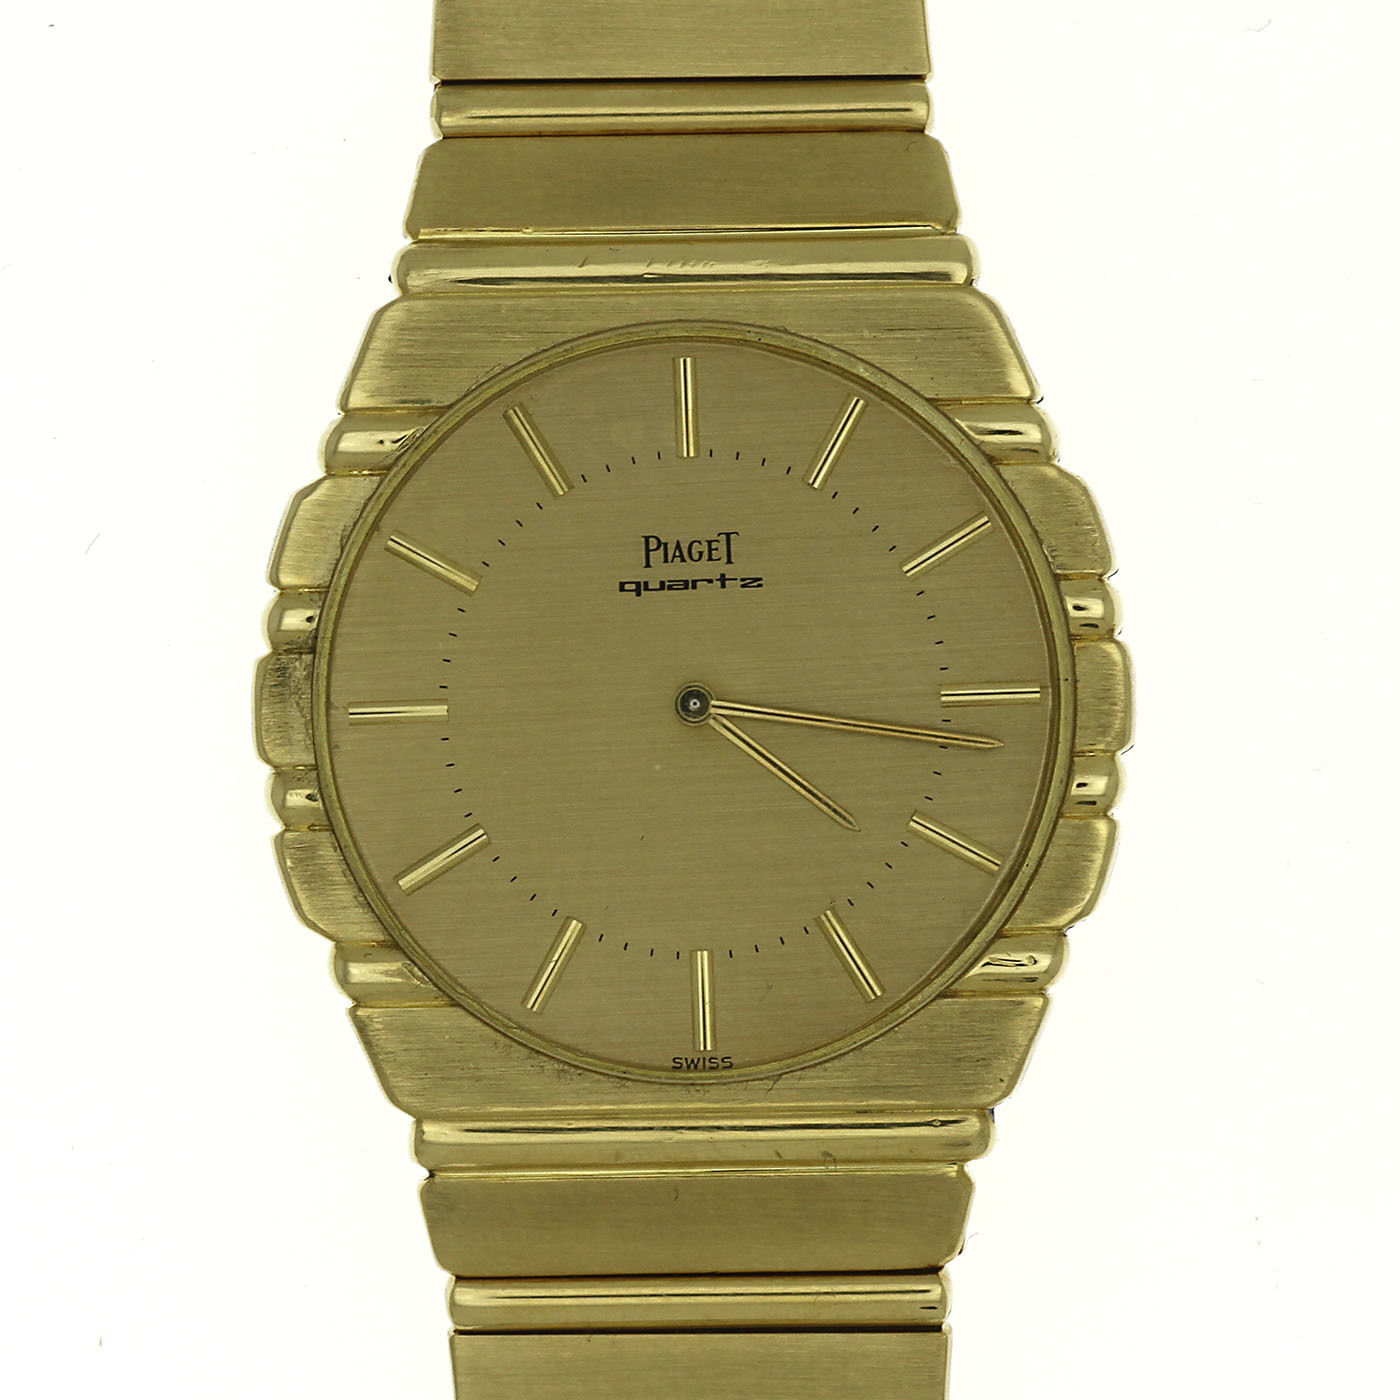 piaget mens brands altiplano gold bucherer watch rose watches